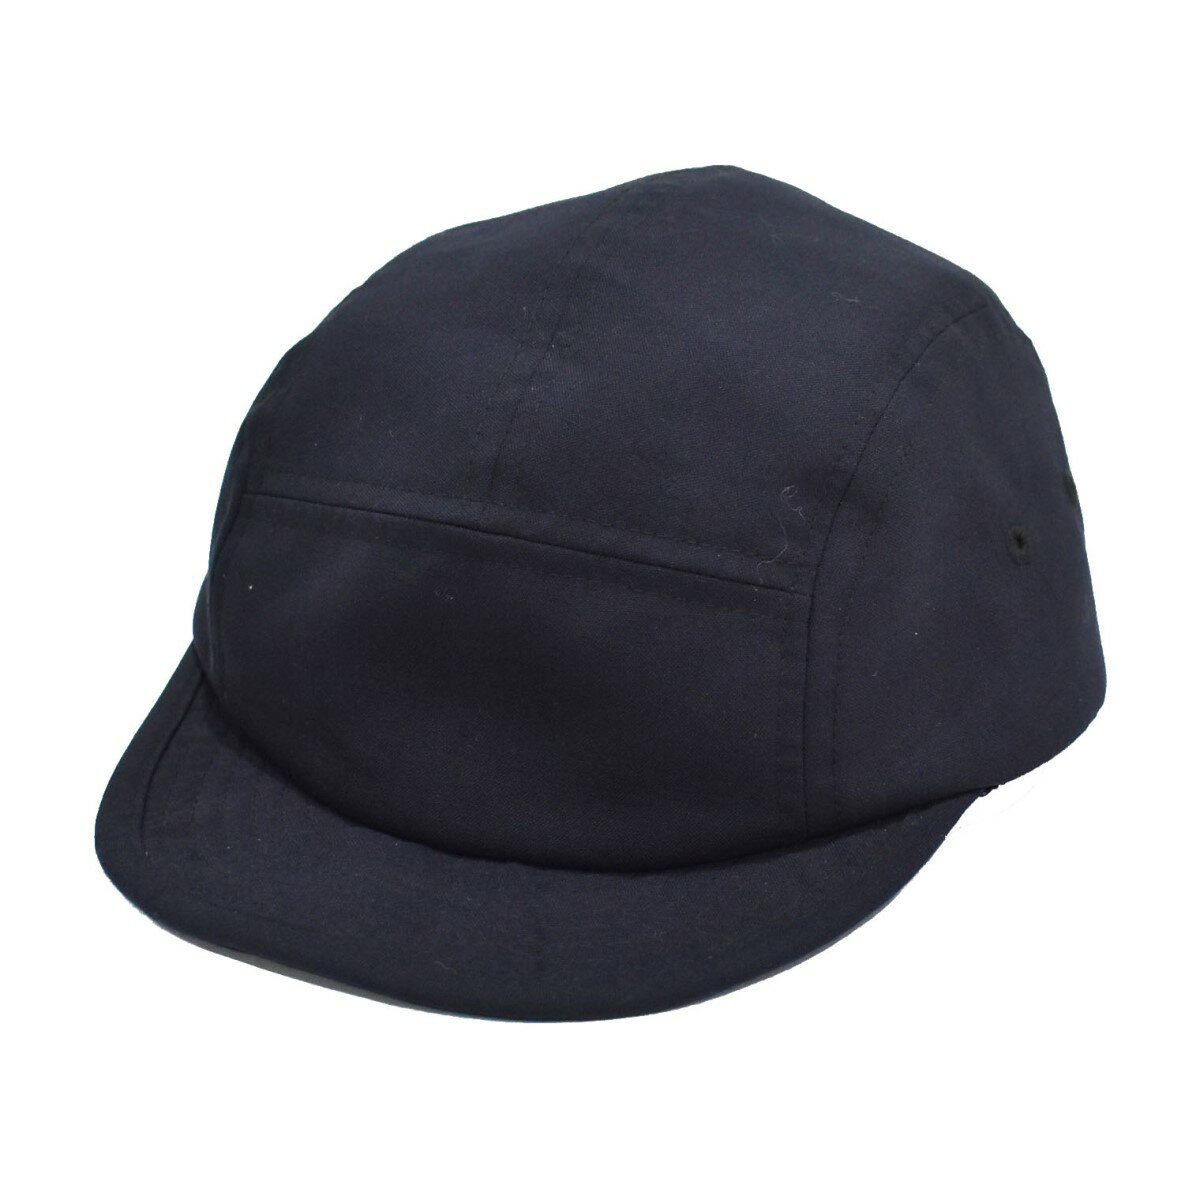 メンズ帽子, キャップ nonnative 17SS ROAMER CAP WP TROPICAL STRETCH 020520